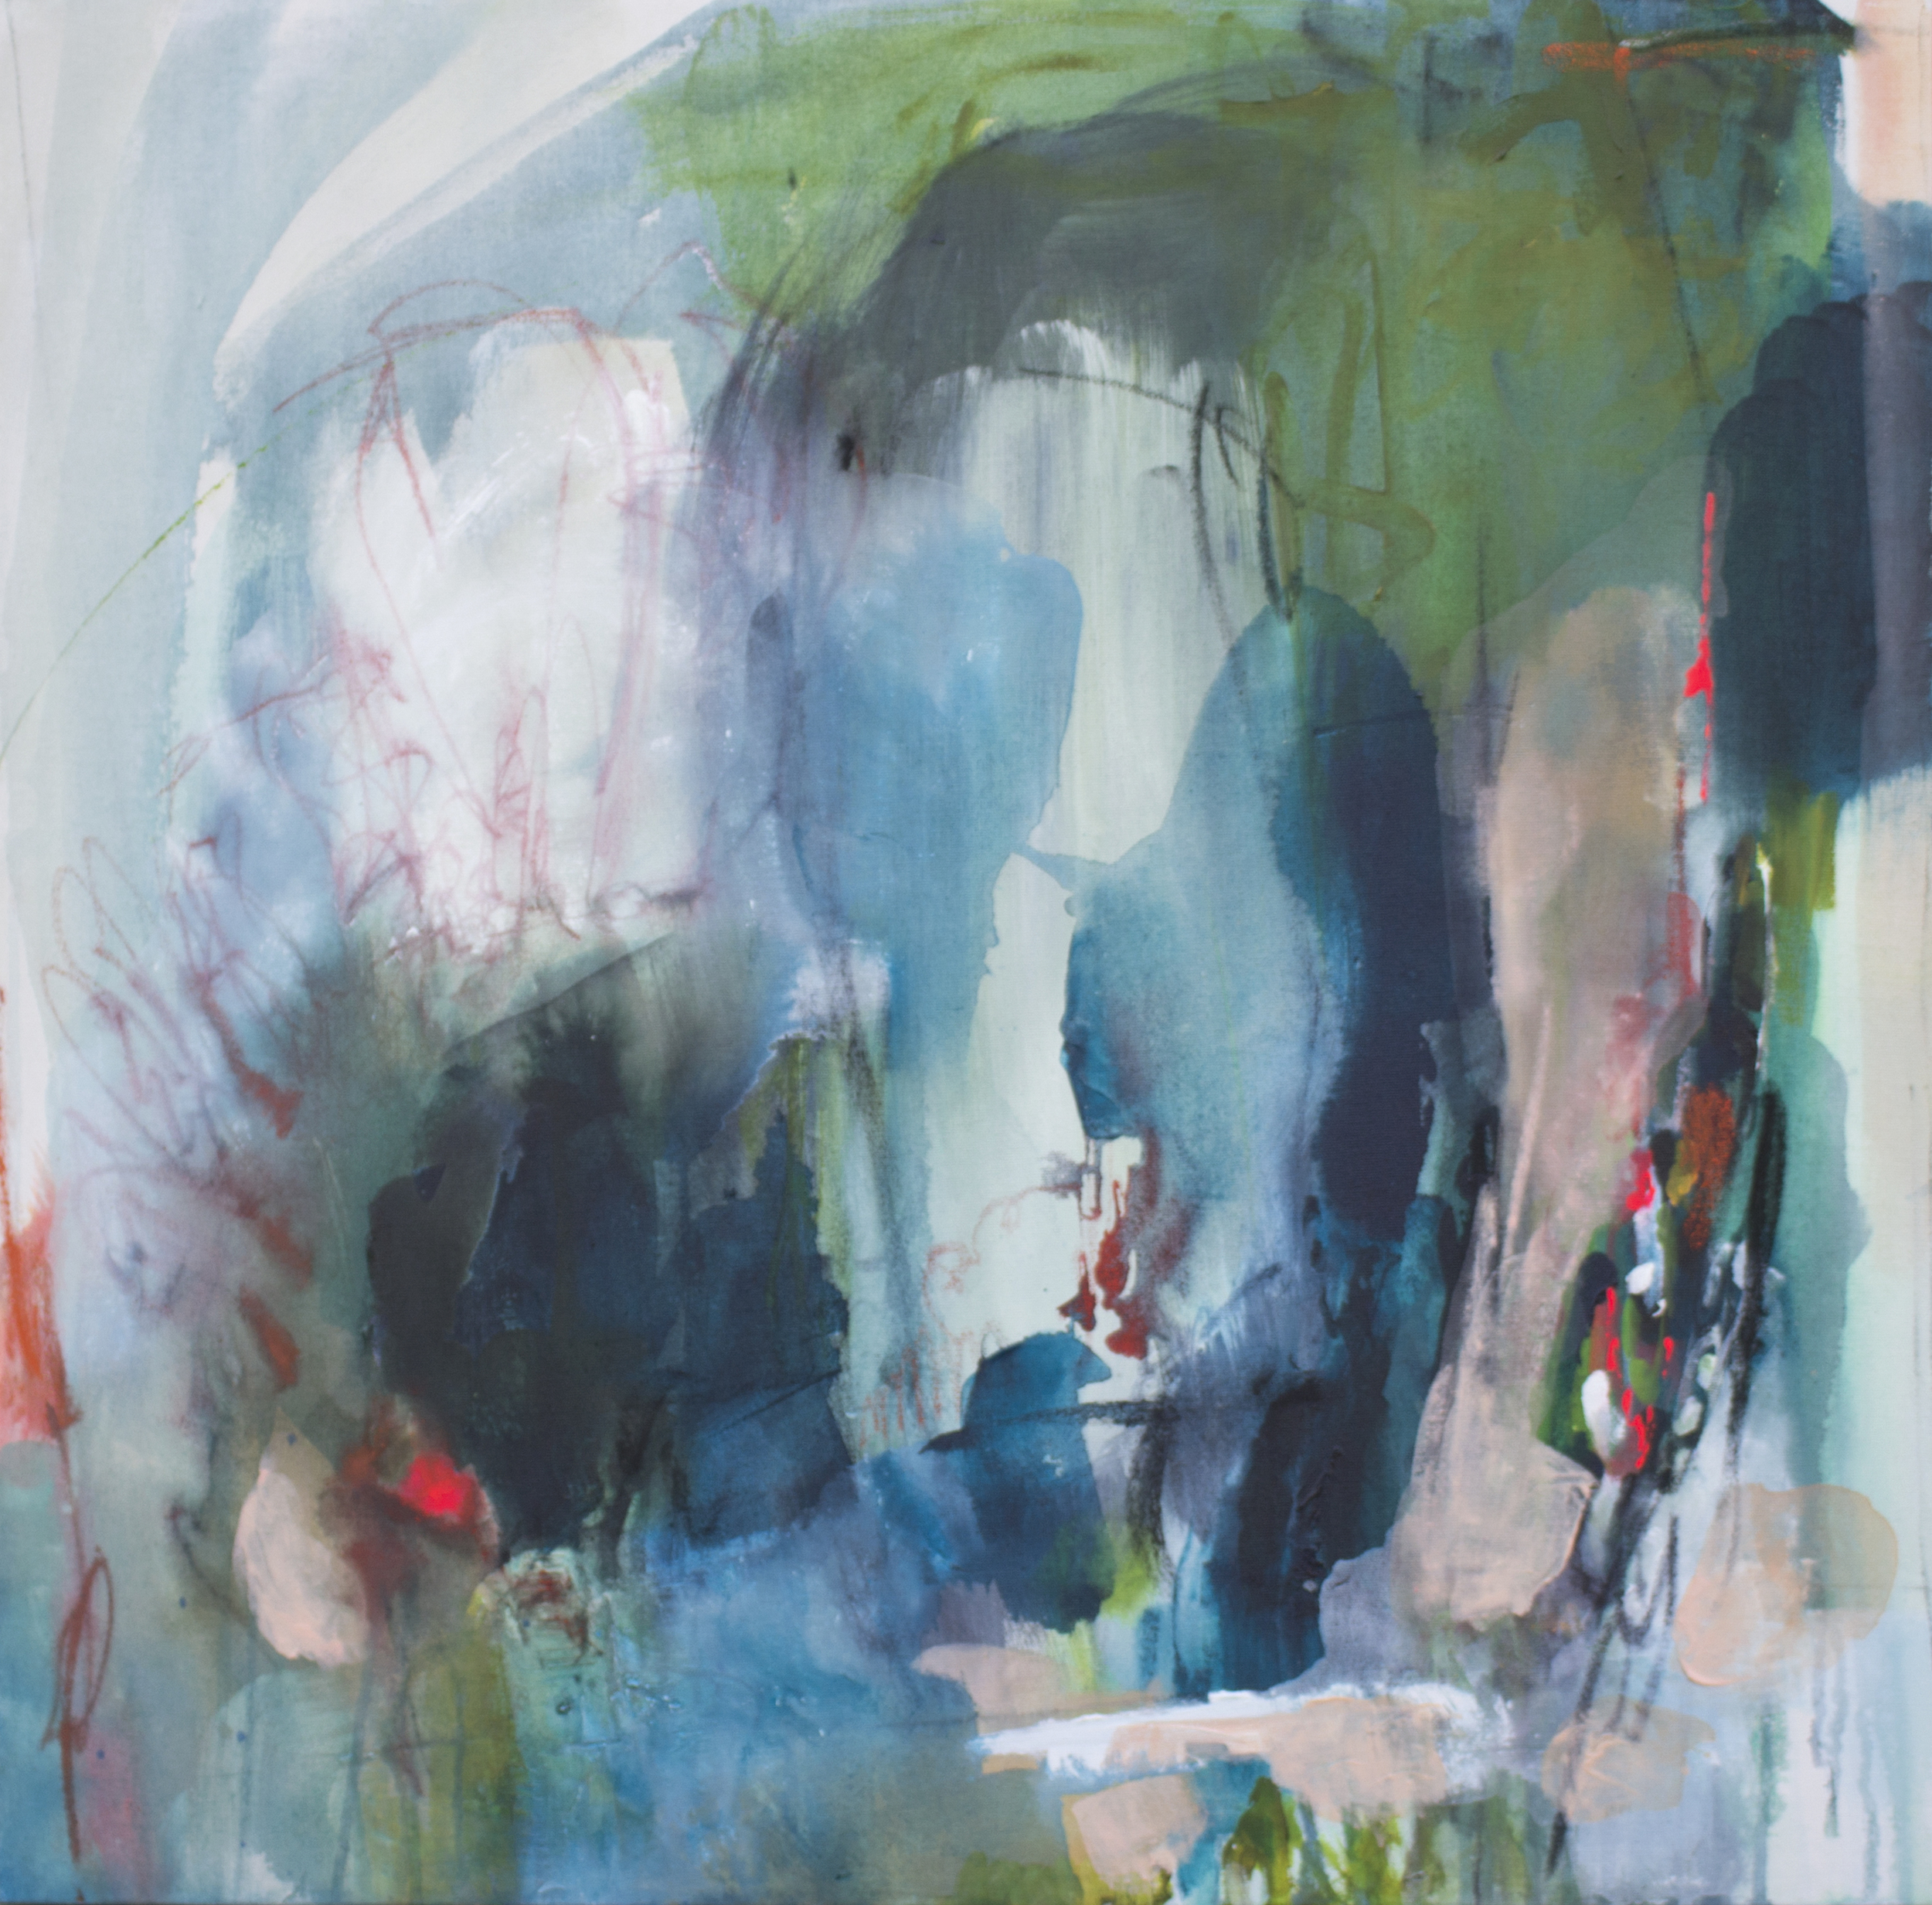 Expletive 27 in. x 29 in. acrylic, pastel, charcoal on canvas